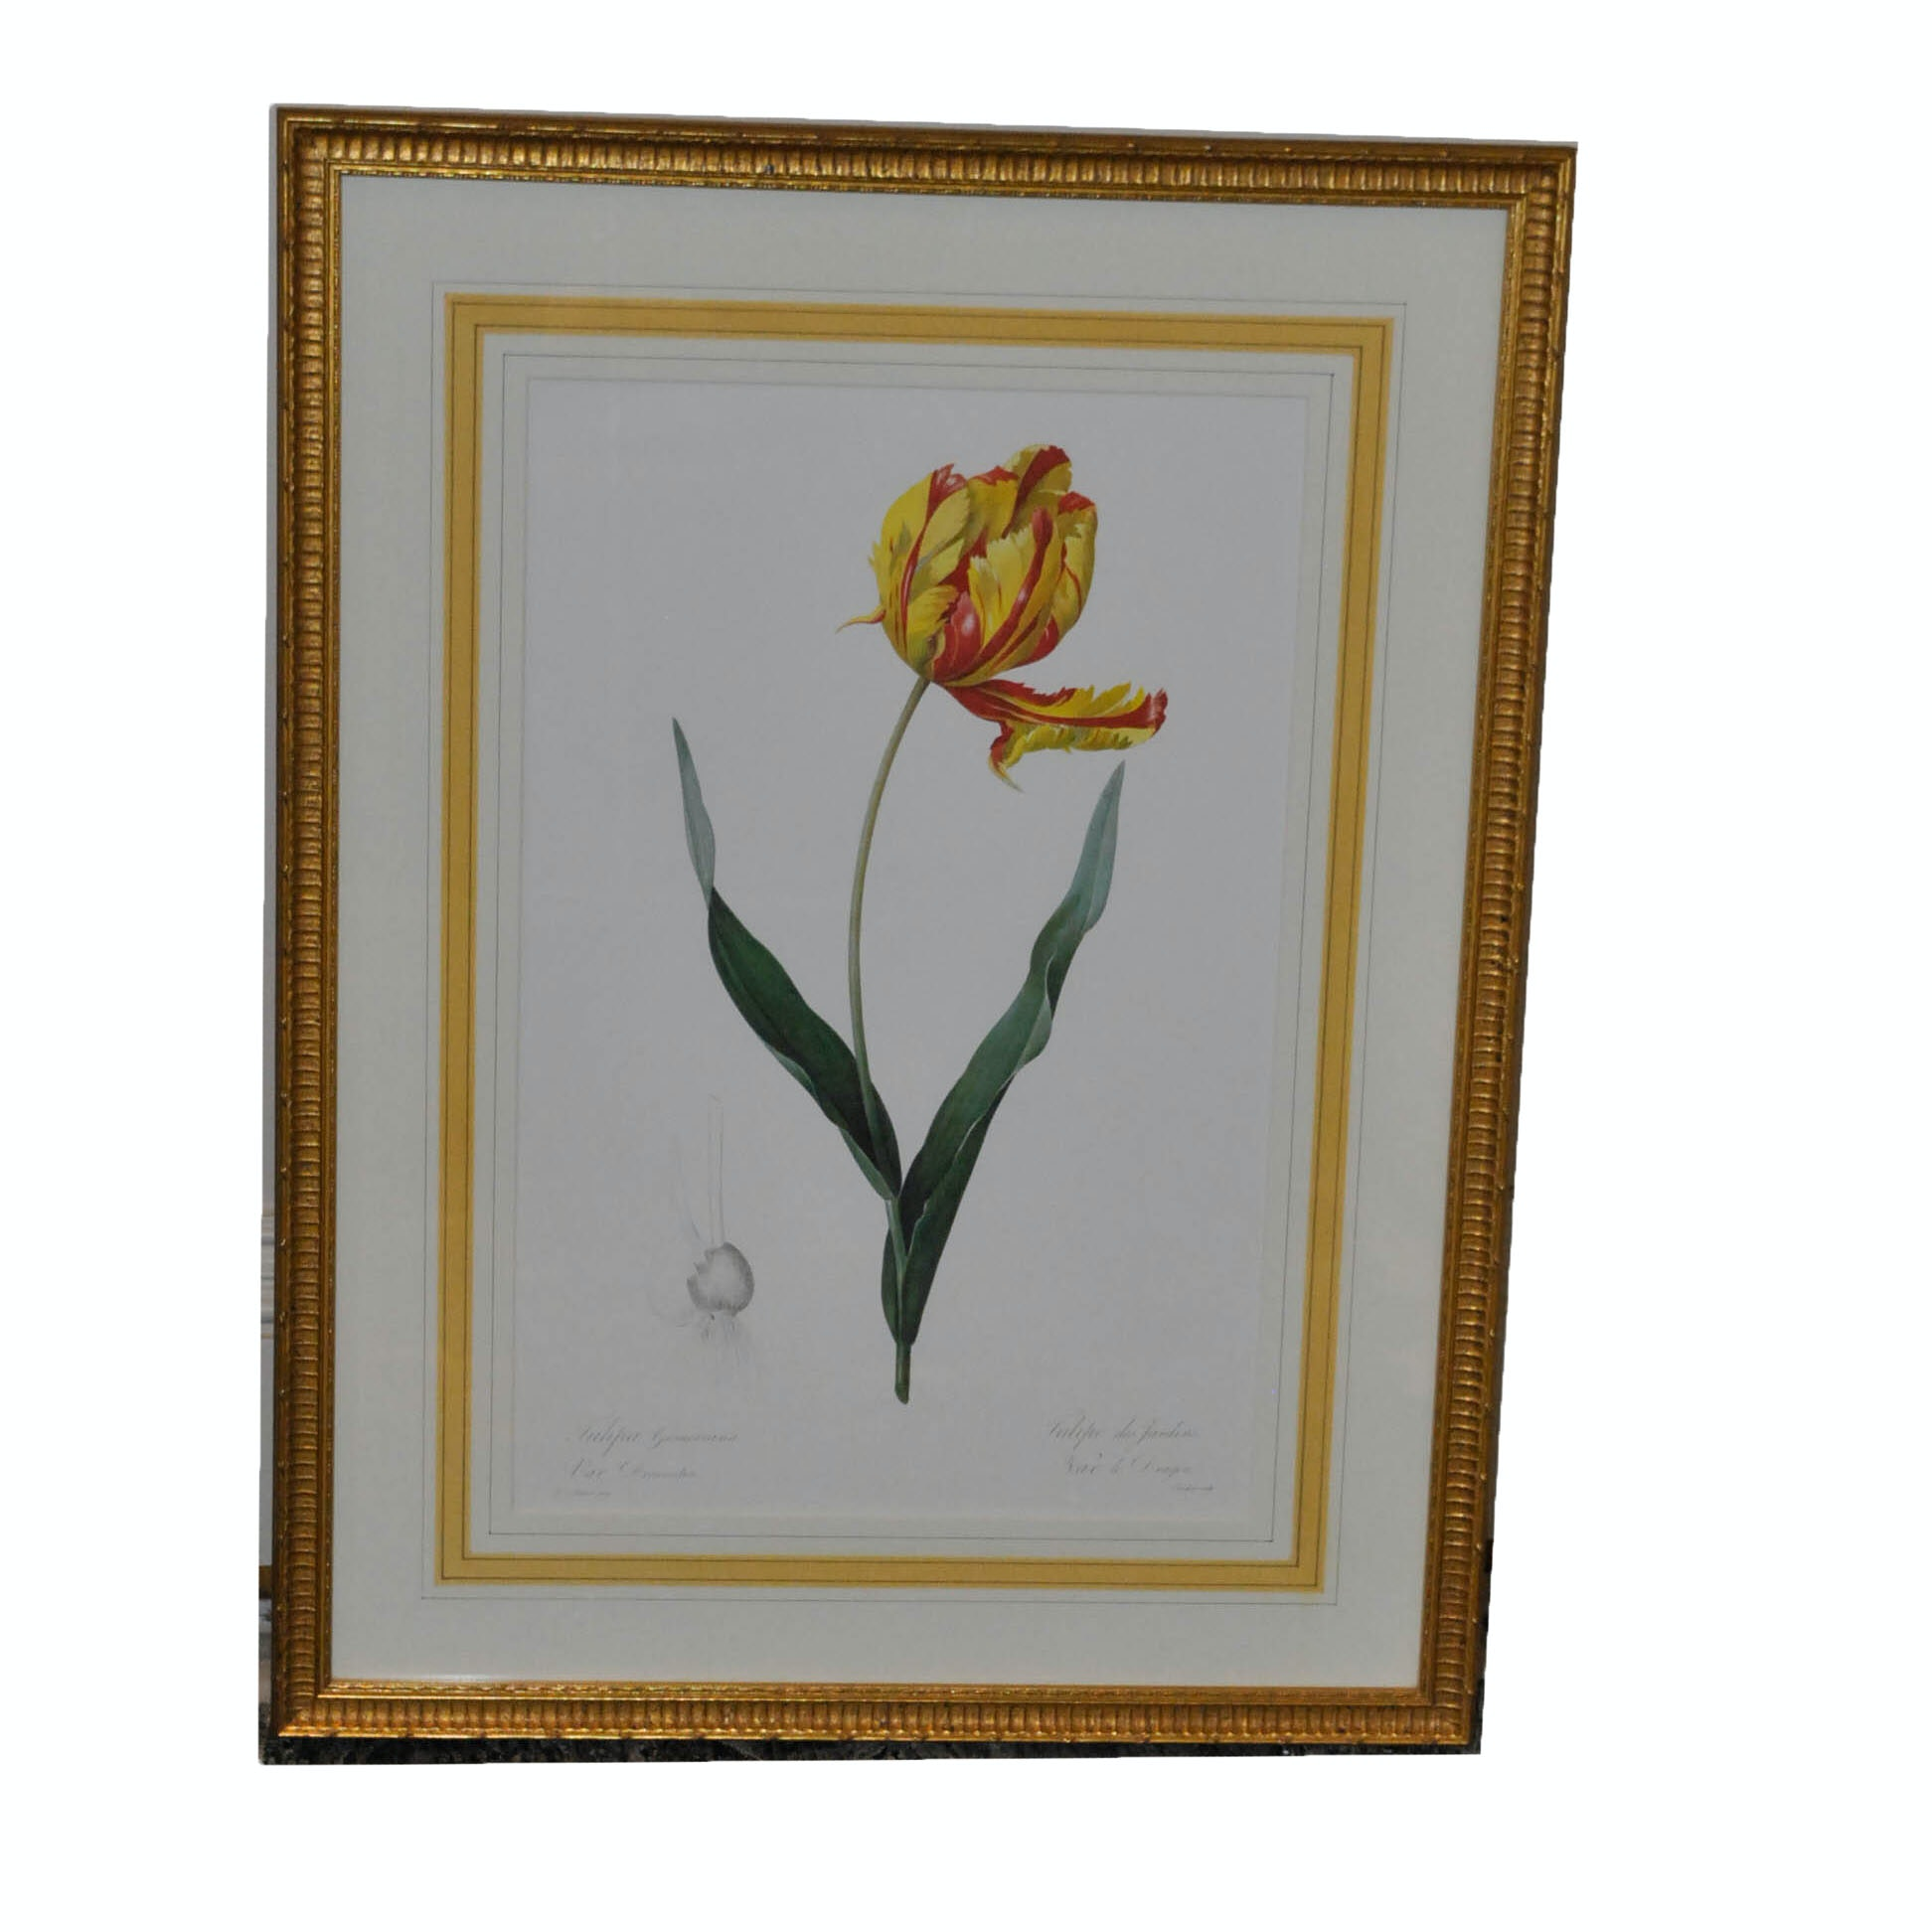 Offset Lithograph After Pierre-Joseph Redouté of a Tulip